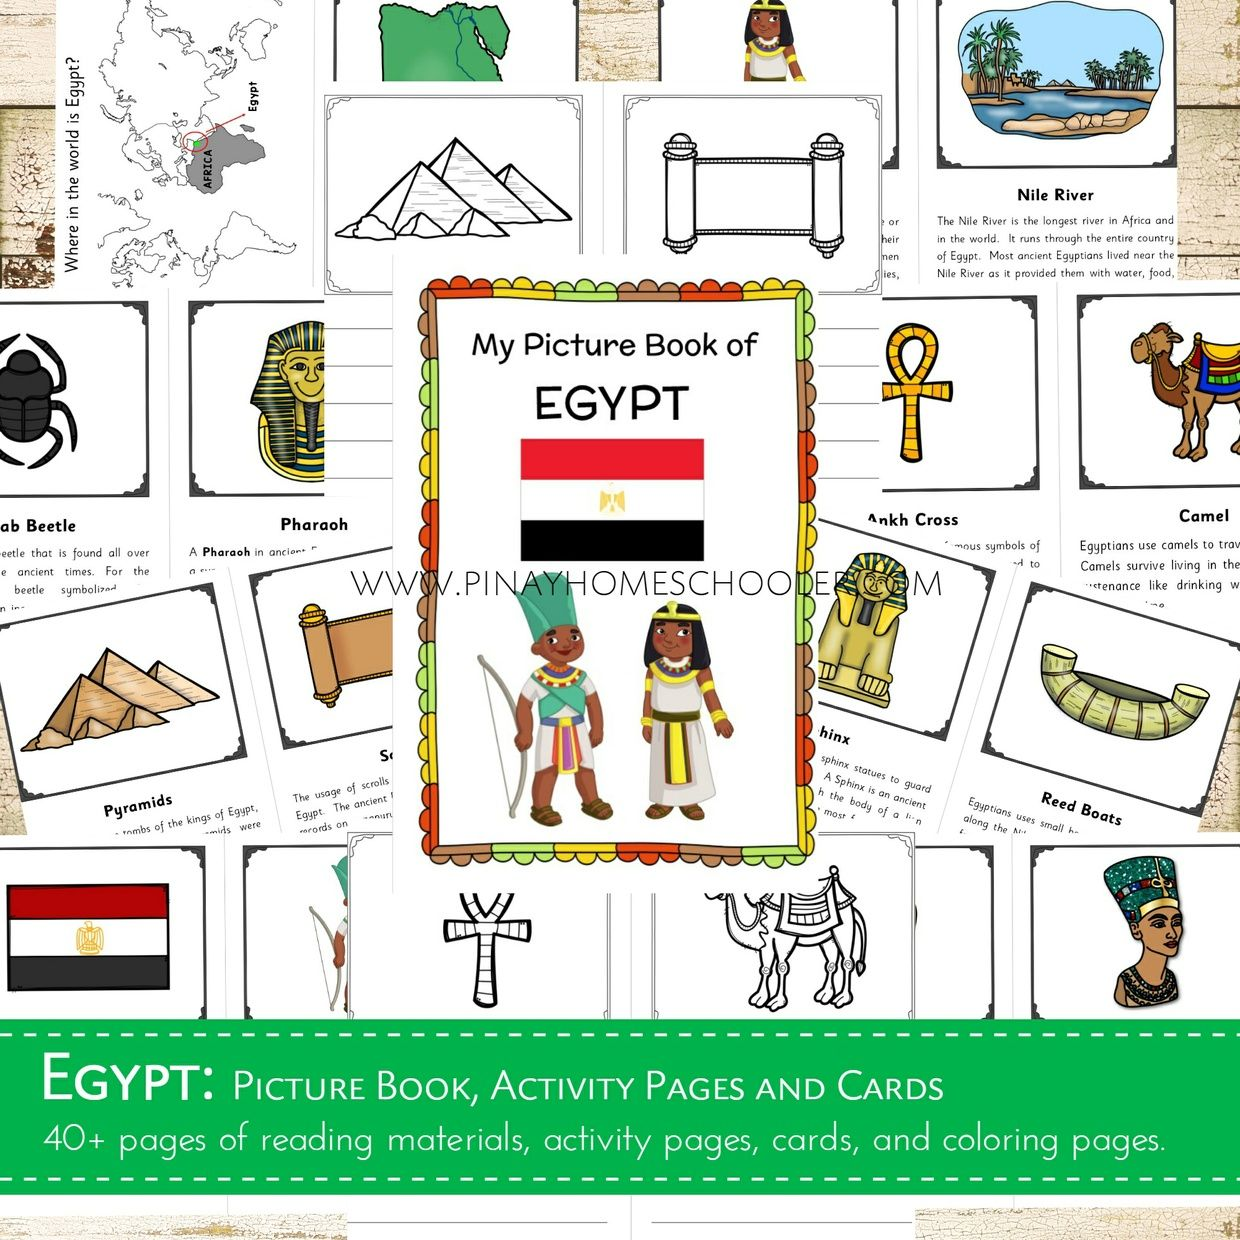 This Contains Learning Materials For Introducing Egypt To Children From 3 Years And Older It Contains R Activities Preschool Activities Afterschool Activities [ 1240 x 1240 Pixel ]